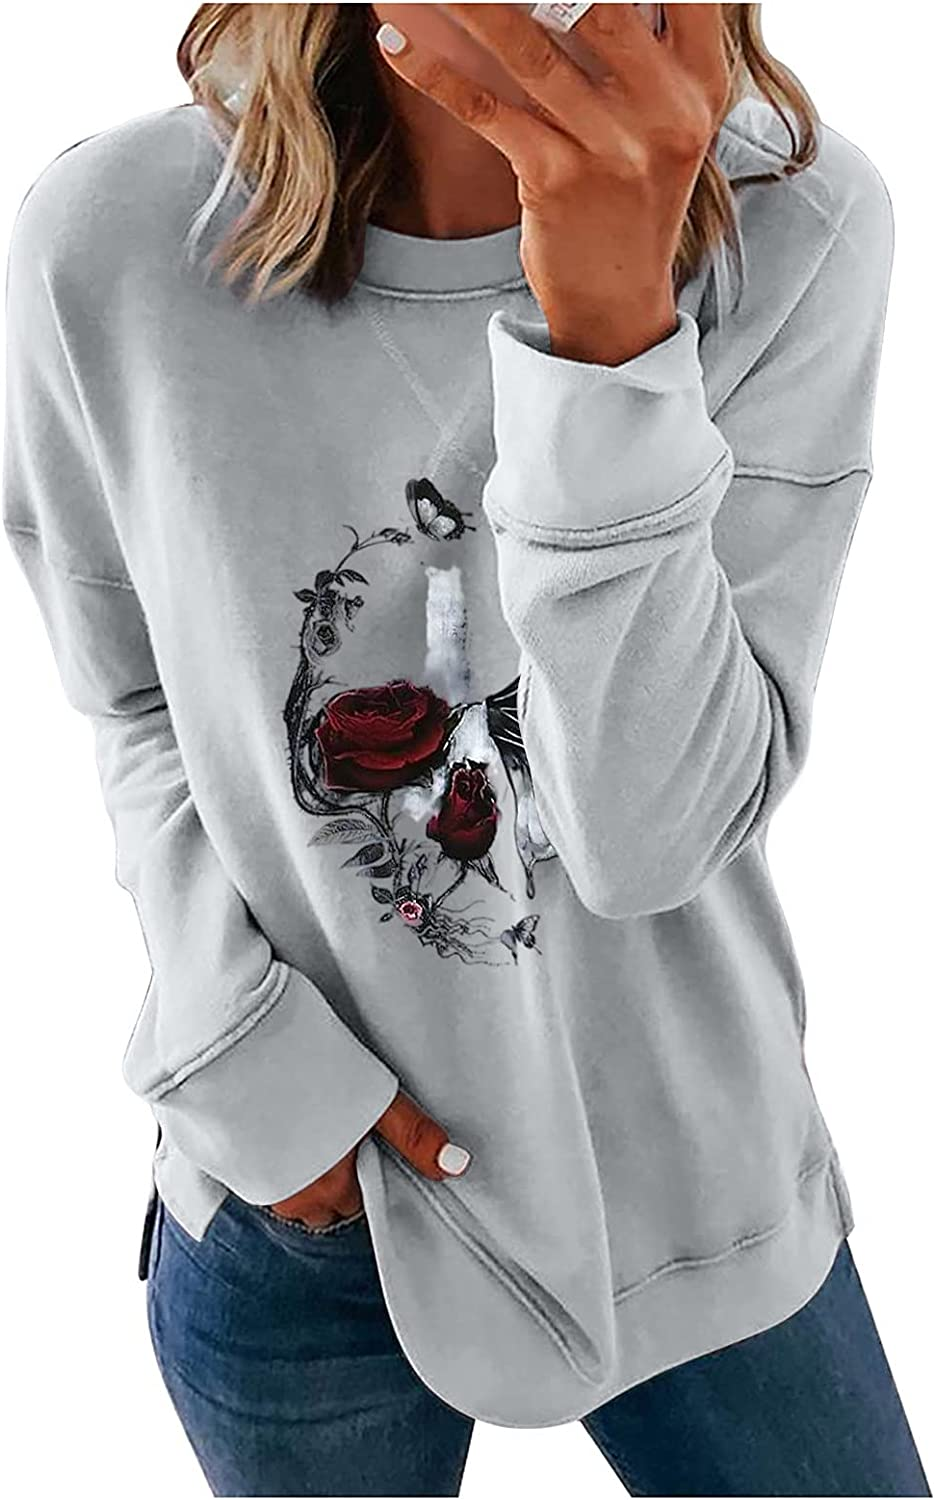 Womens Tops Halloween Costume 5 popular Shirts Cre Import Floral Butterfly Blouse